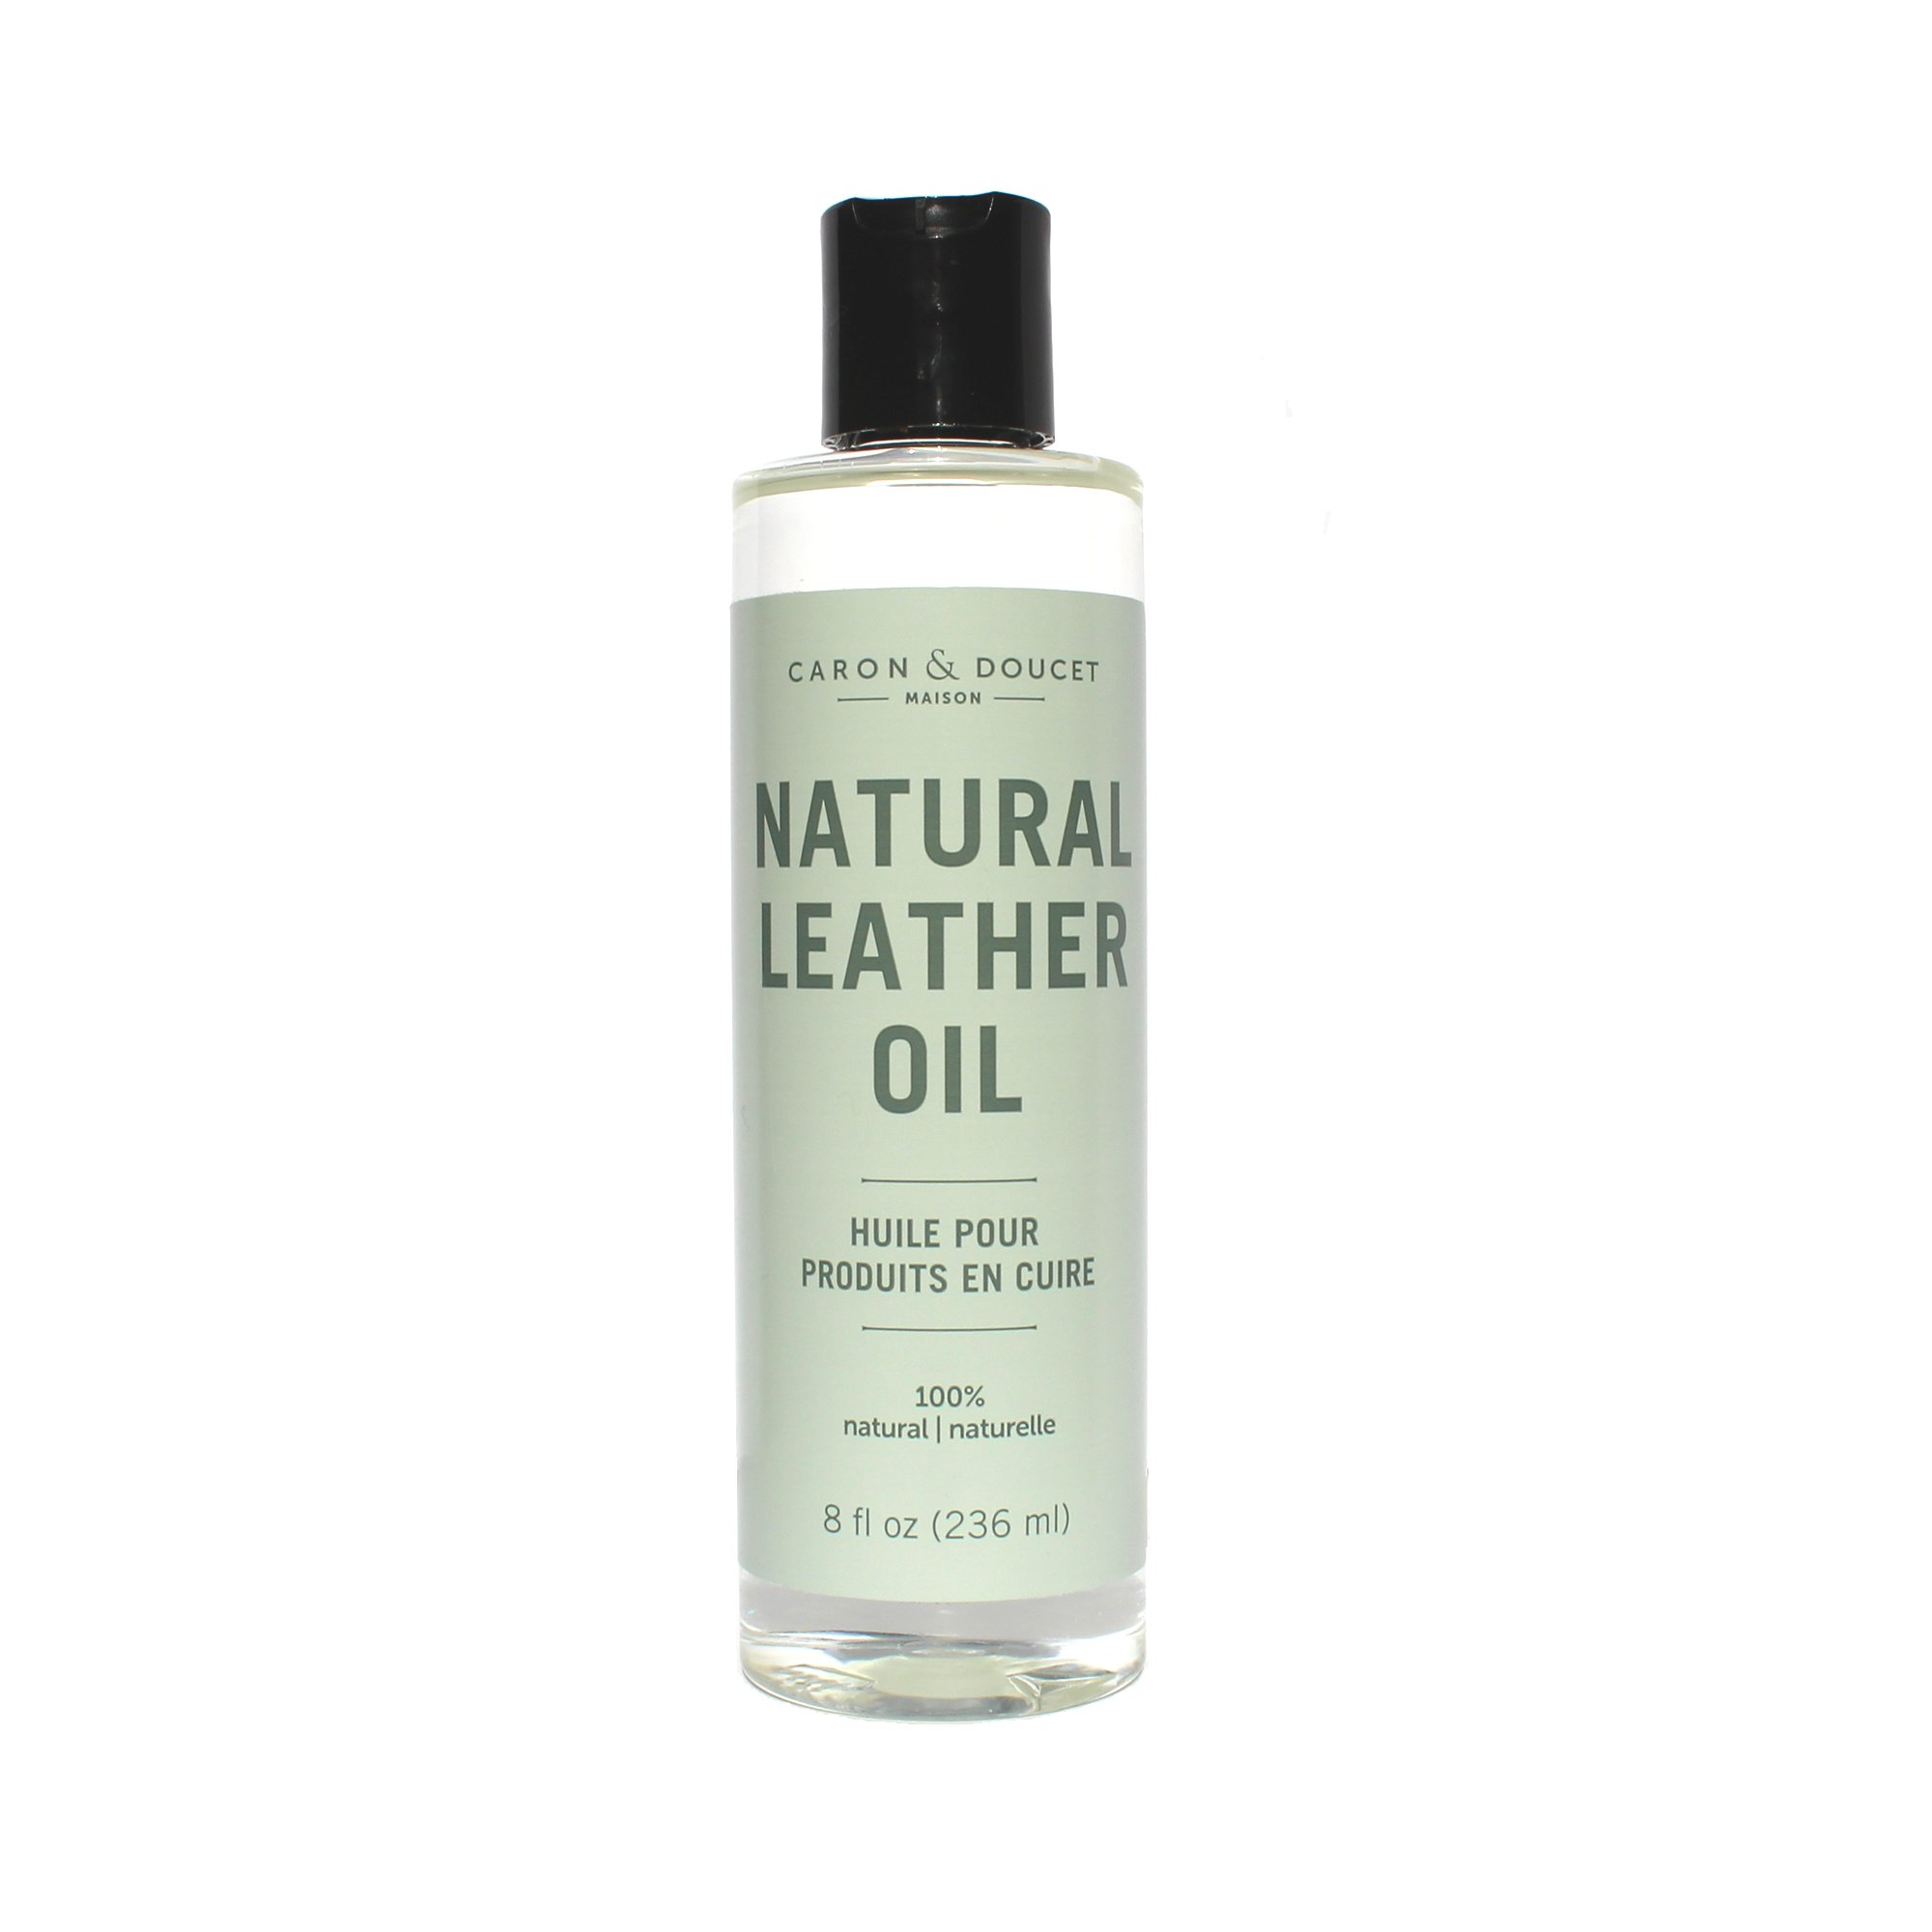 Caron & Doucet - 100% Natural Leather Oil & Conditioner to Repair & Restore; Shoes, Boots, Couches, Car Seats, Purses, Jackets, Saddles & Tacks